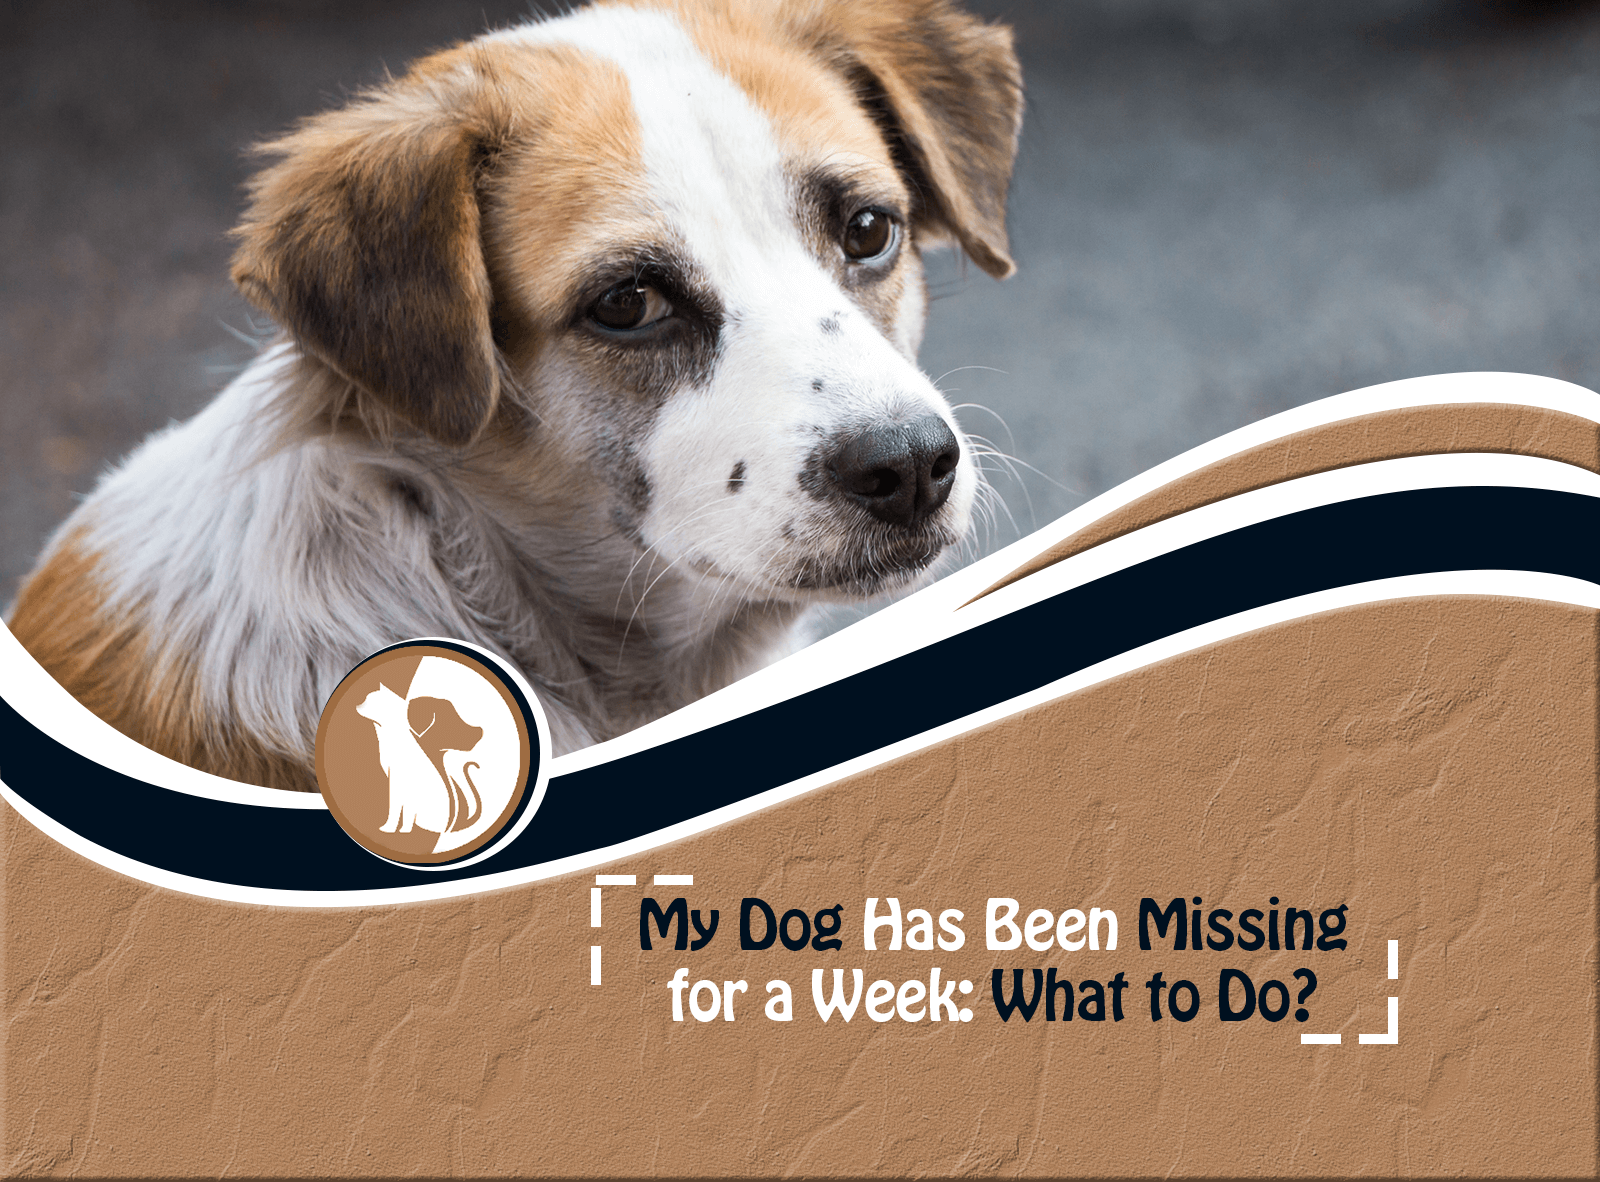 My Dog Has Been Missing for a Week: What to Do?